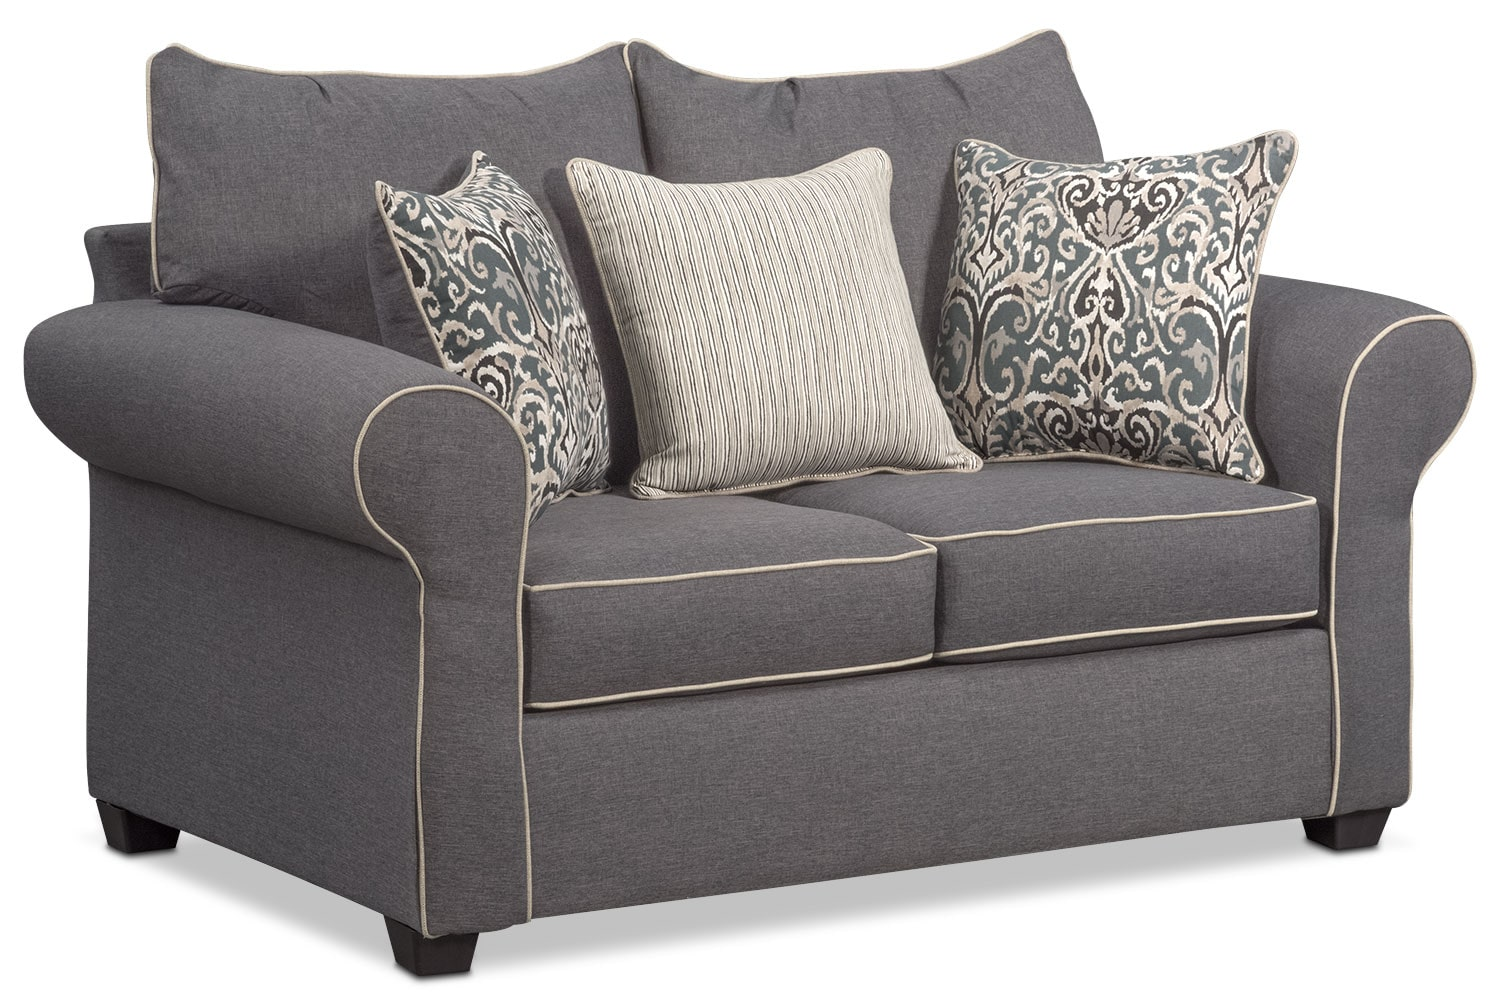 Carla Queen Memory Foam Sleeper Sofa and Loveseat Set Gray